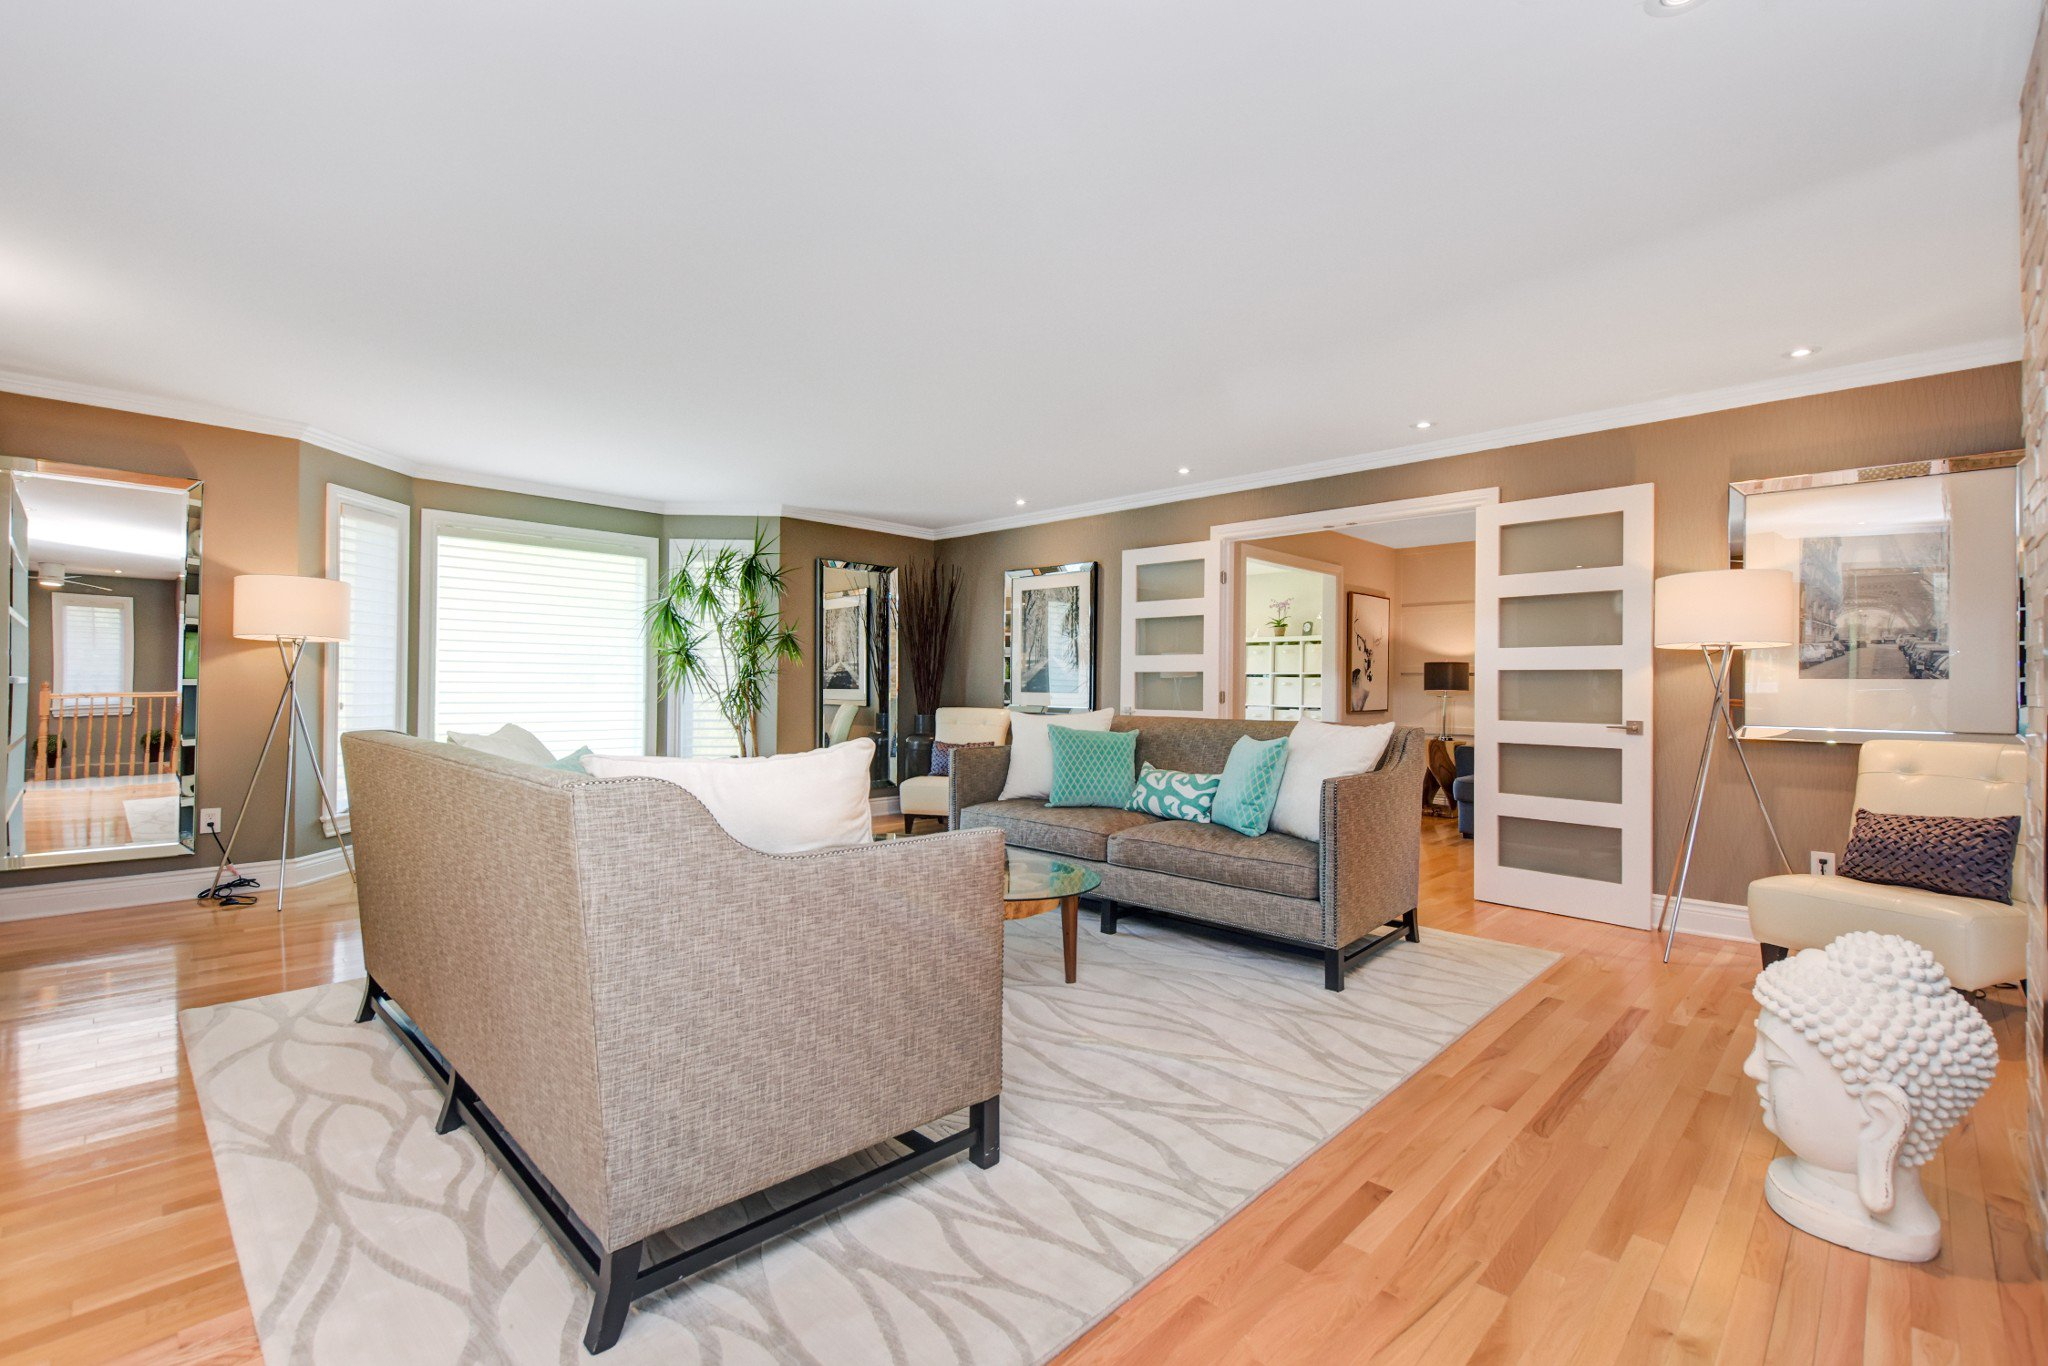 Photo 10: Photos: 1490 REINDEER WAY.: Greely House for sale (Ottawa)  : MLS®# 1109530